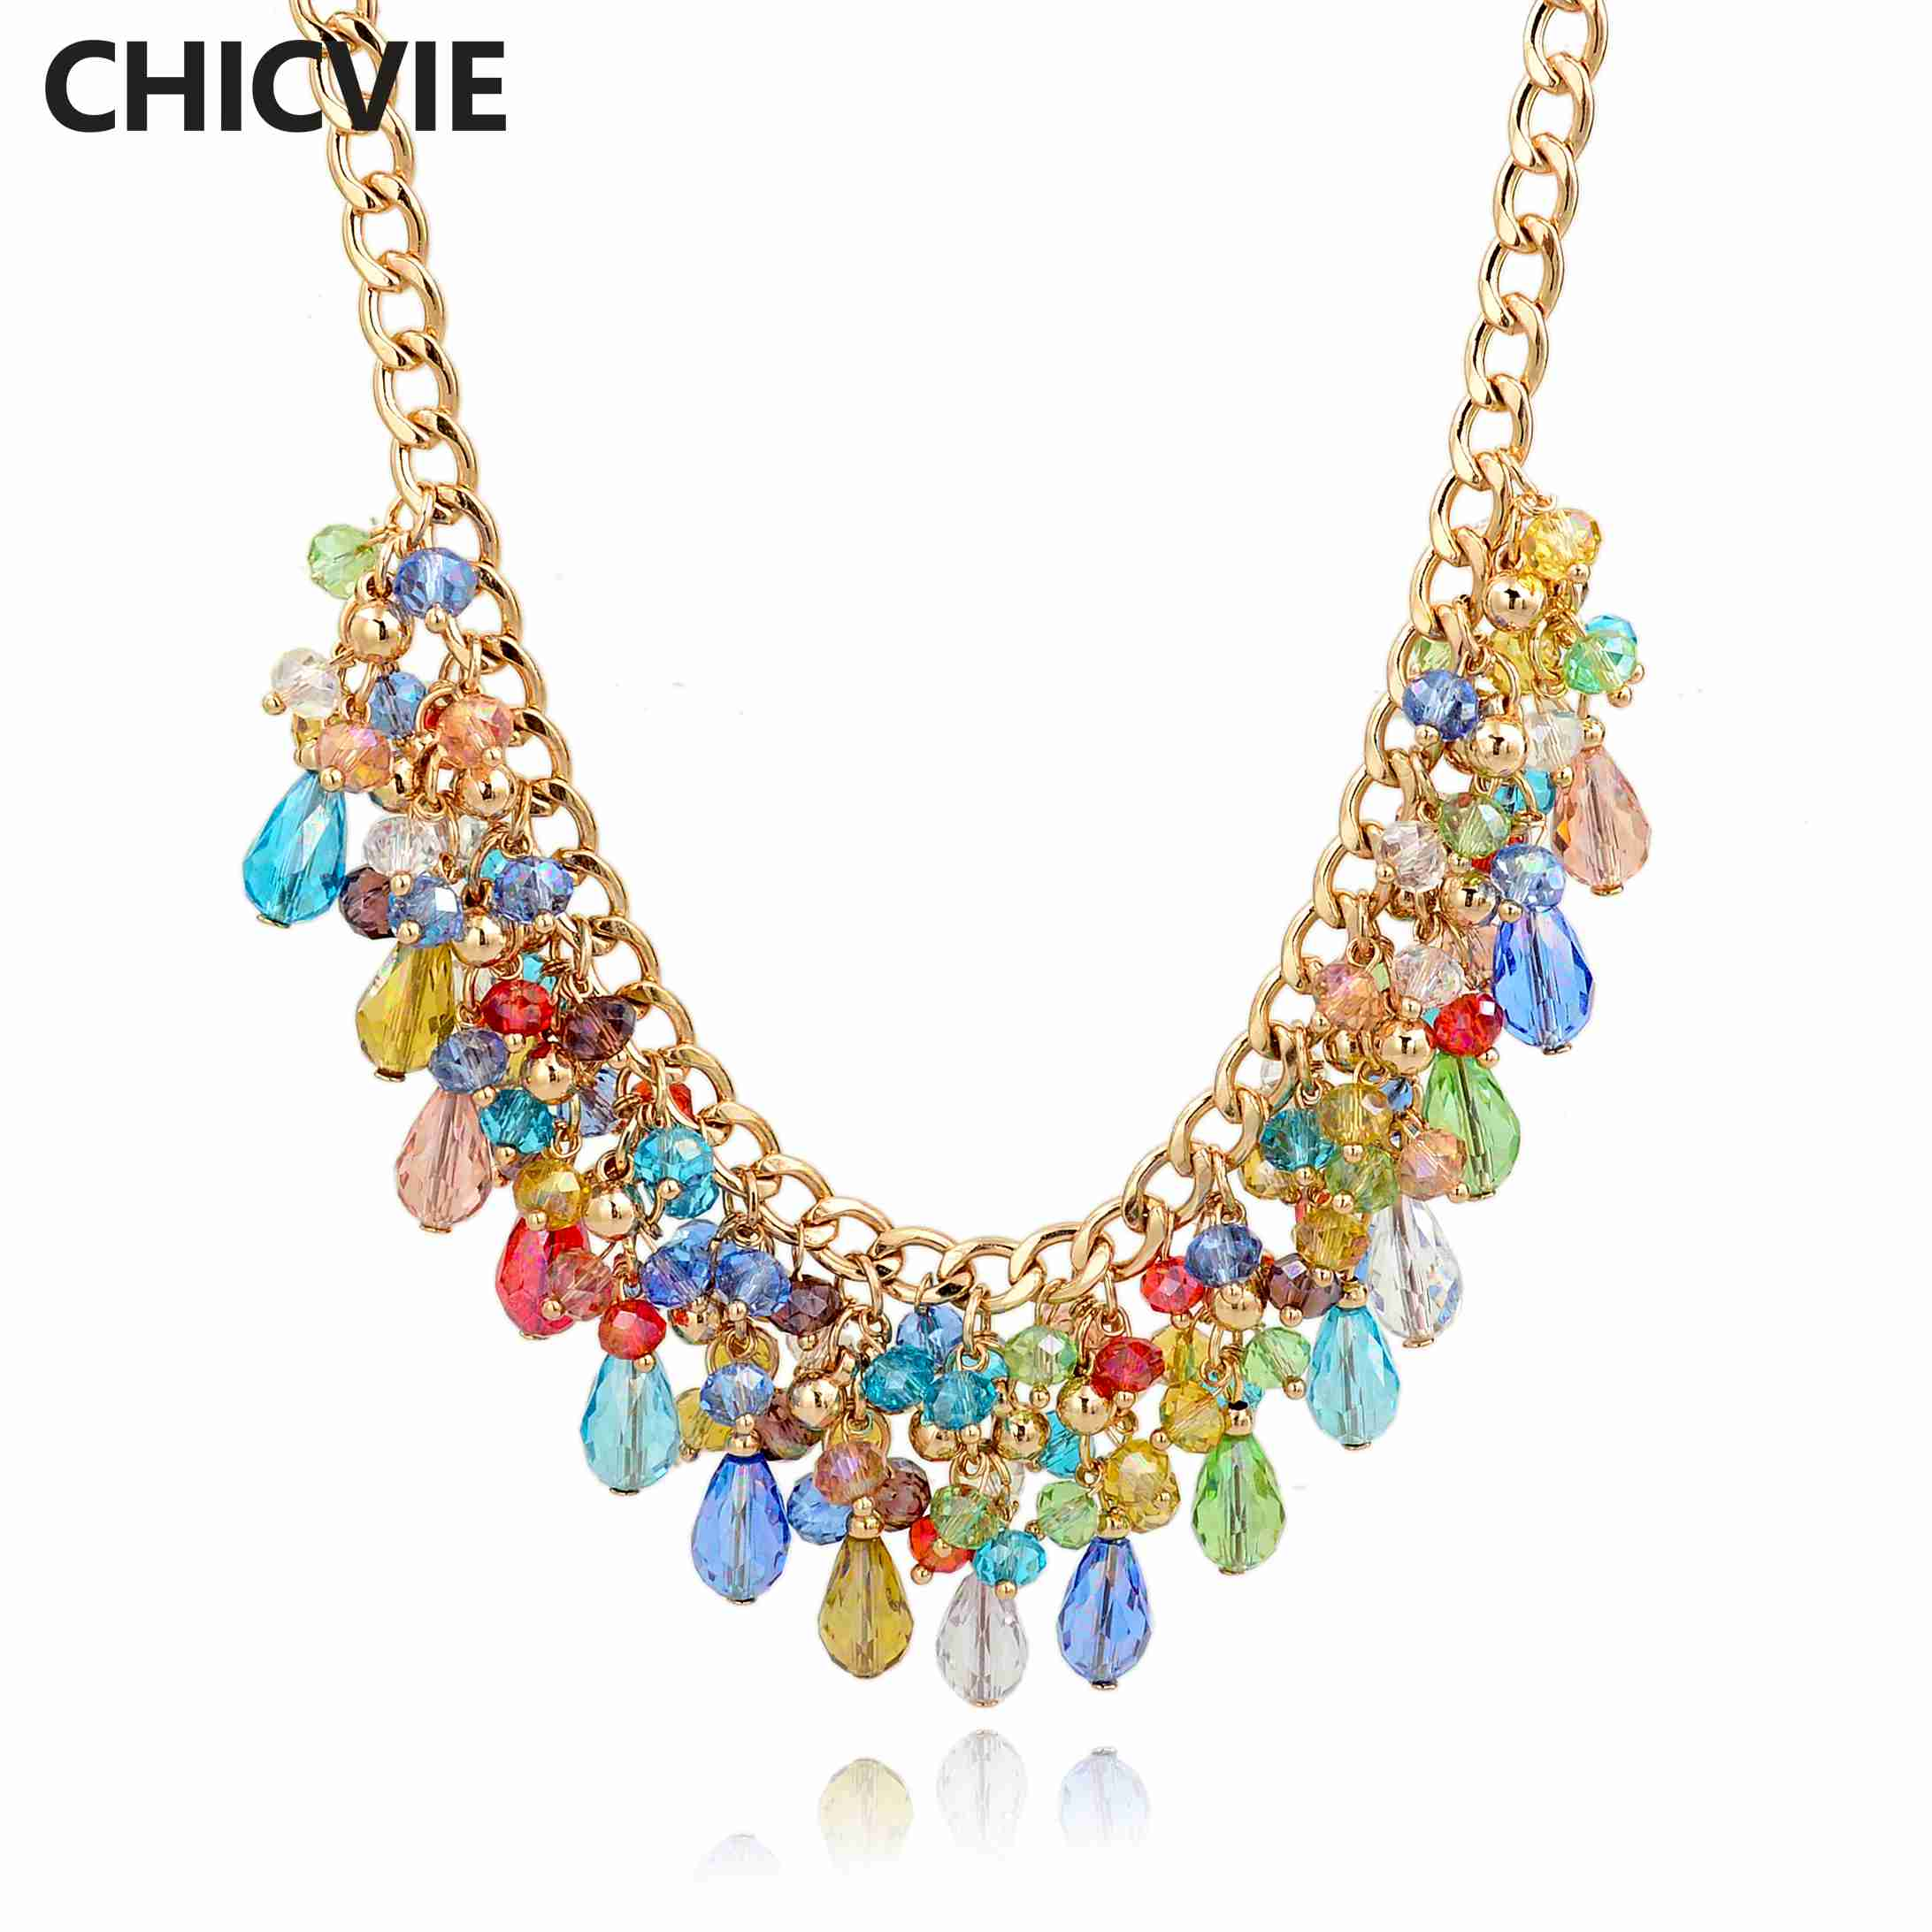 closet necklace gemstone product pink chunky statement ruginavincys glamour psx